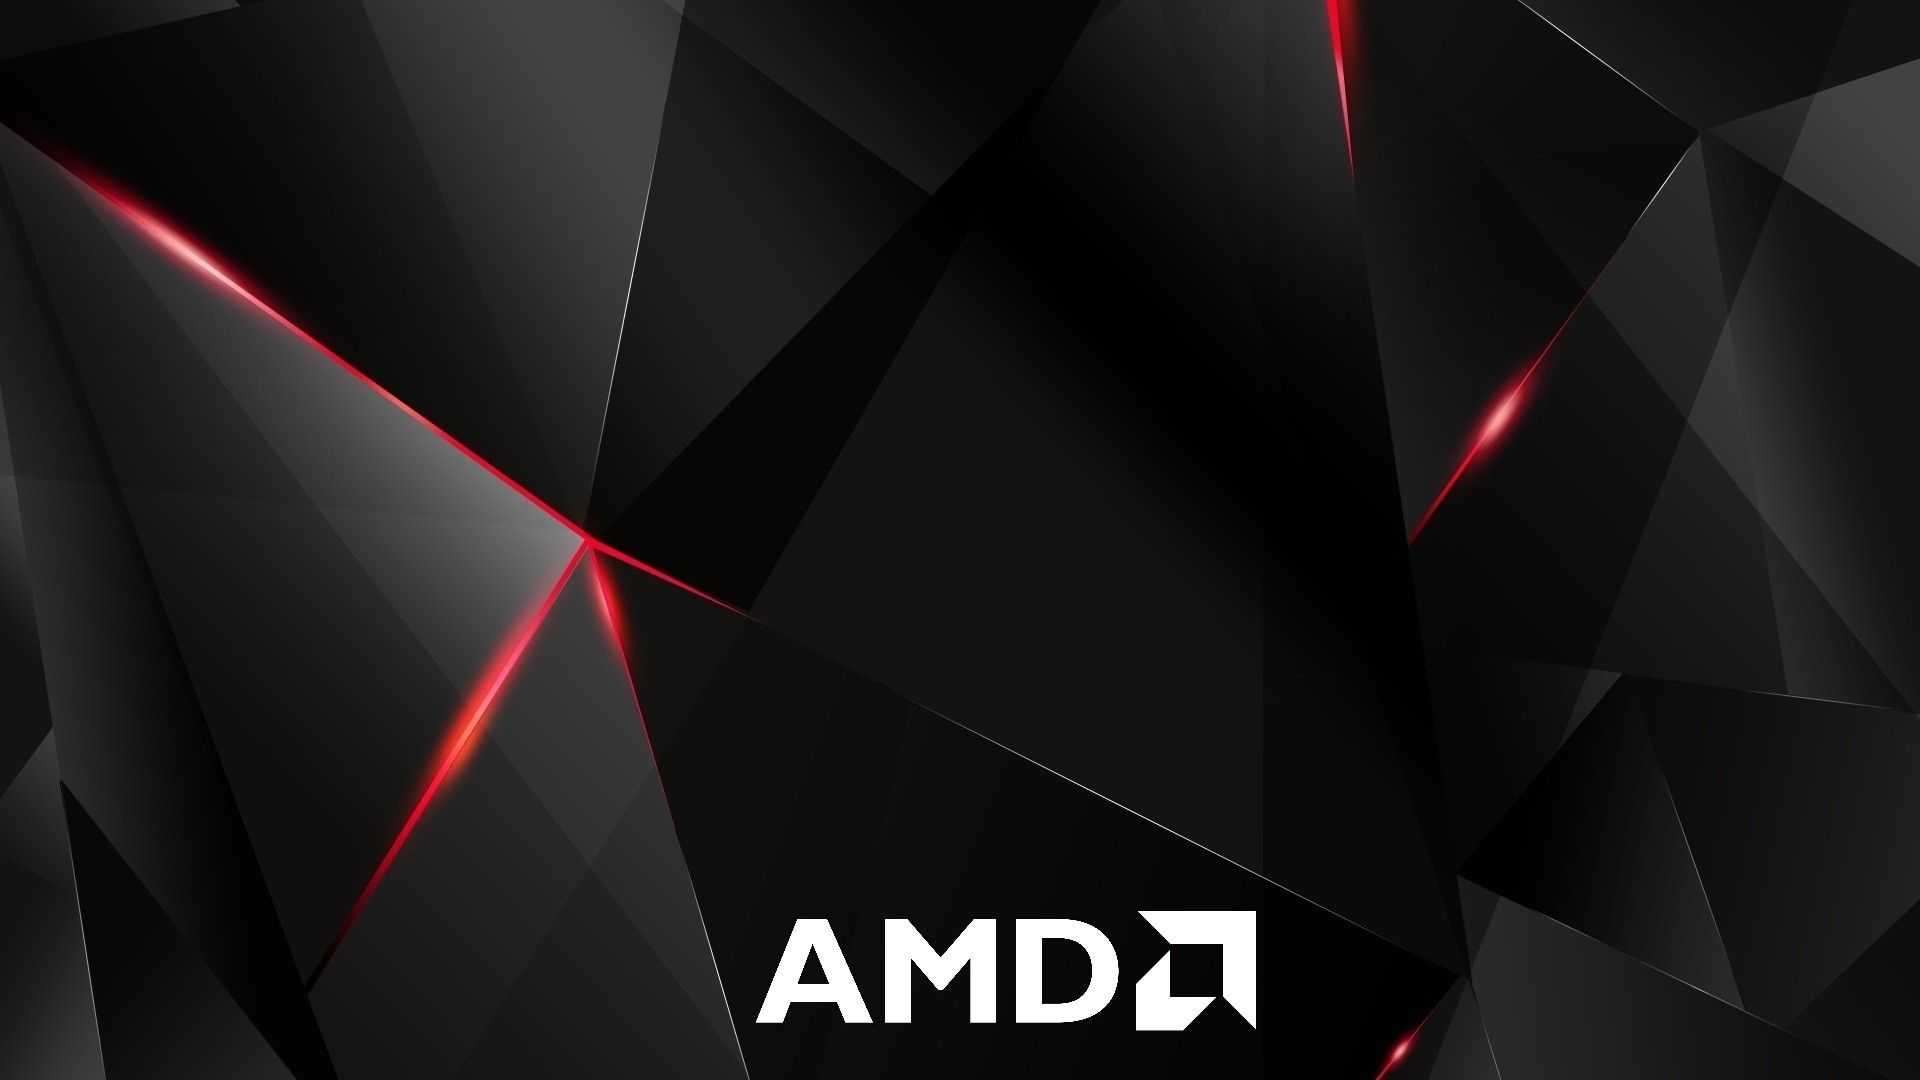 AMD Wallpapers - Top Free AMD